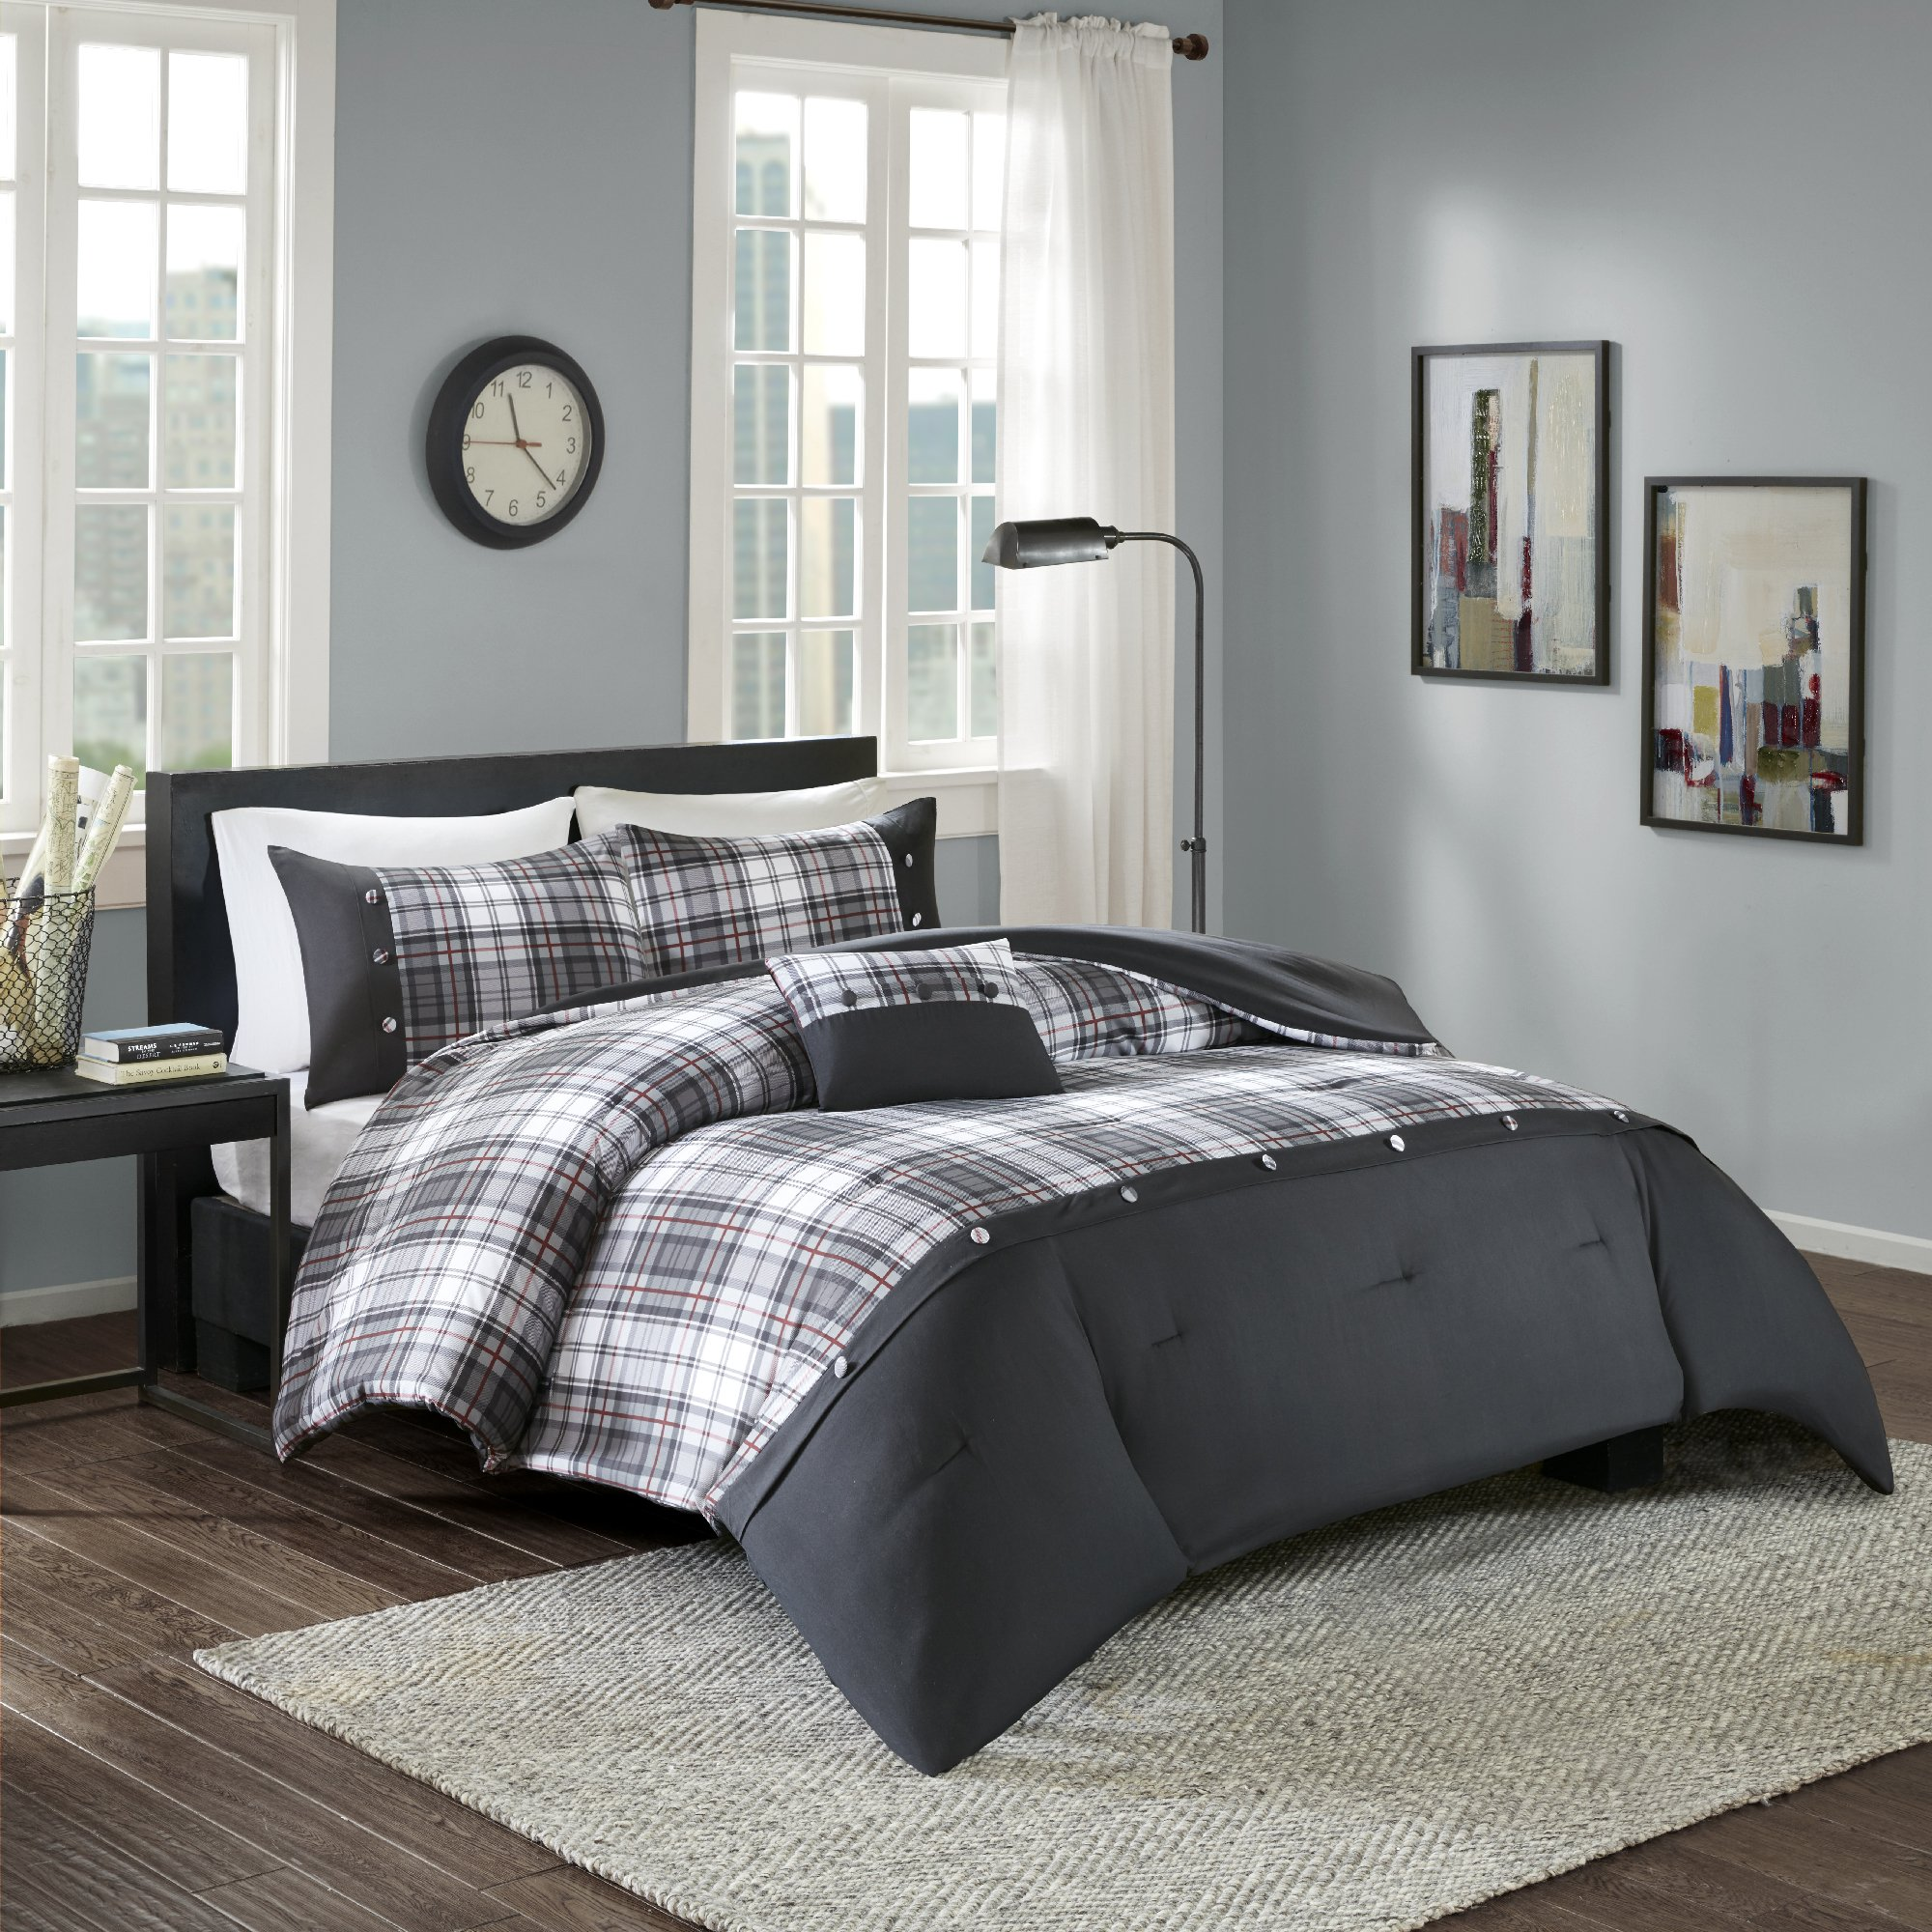 Comfort Spaces - Asher Comforter Set - 3 Piece - Black - Multi-Color Plaid - Perfect For College Dormitory, Guest Room - Twin/Twin XL Size, includes 1 Comforter, 1 Sham, 1 Decorative Pillow by Comfort Spaces